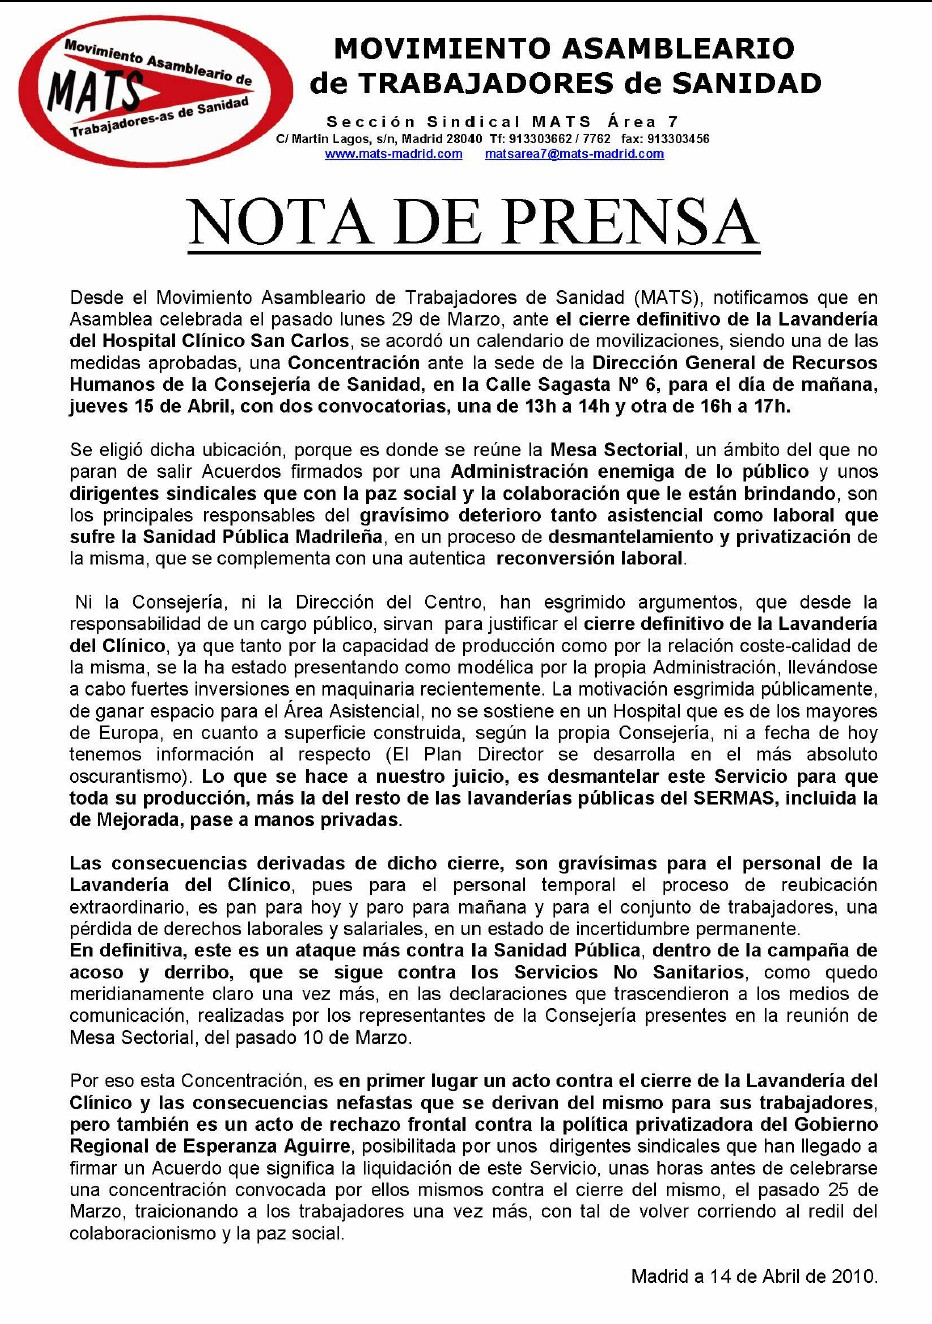 Nota de prensa del MATS ante la concentracin de Sagasta, maana 15 de abril.